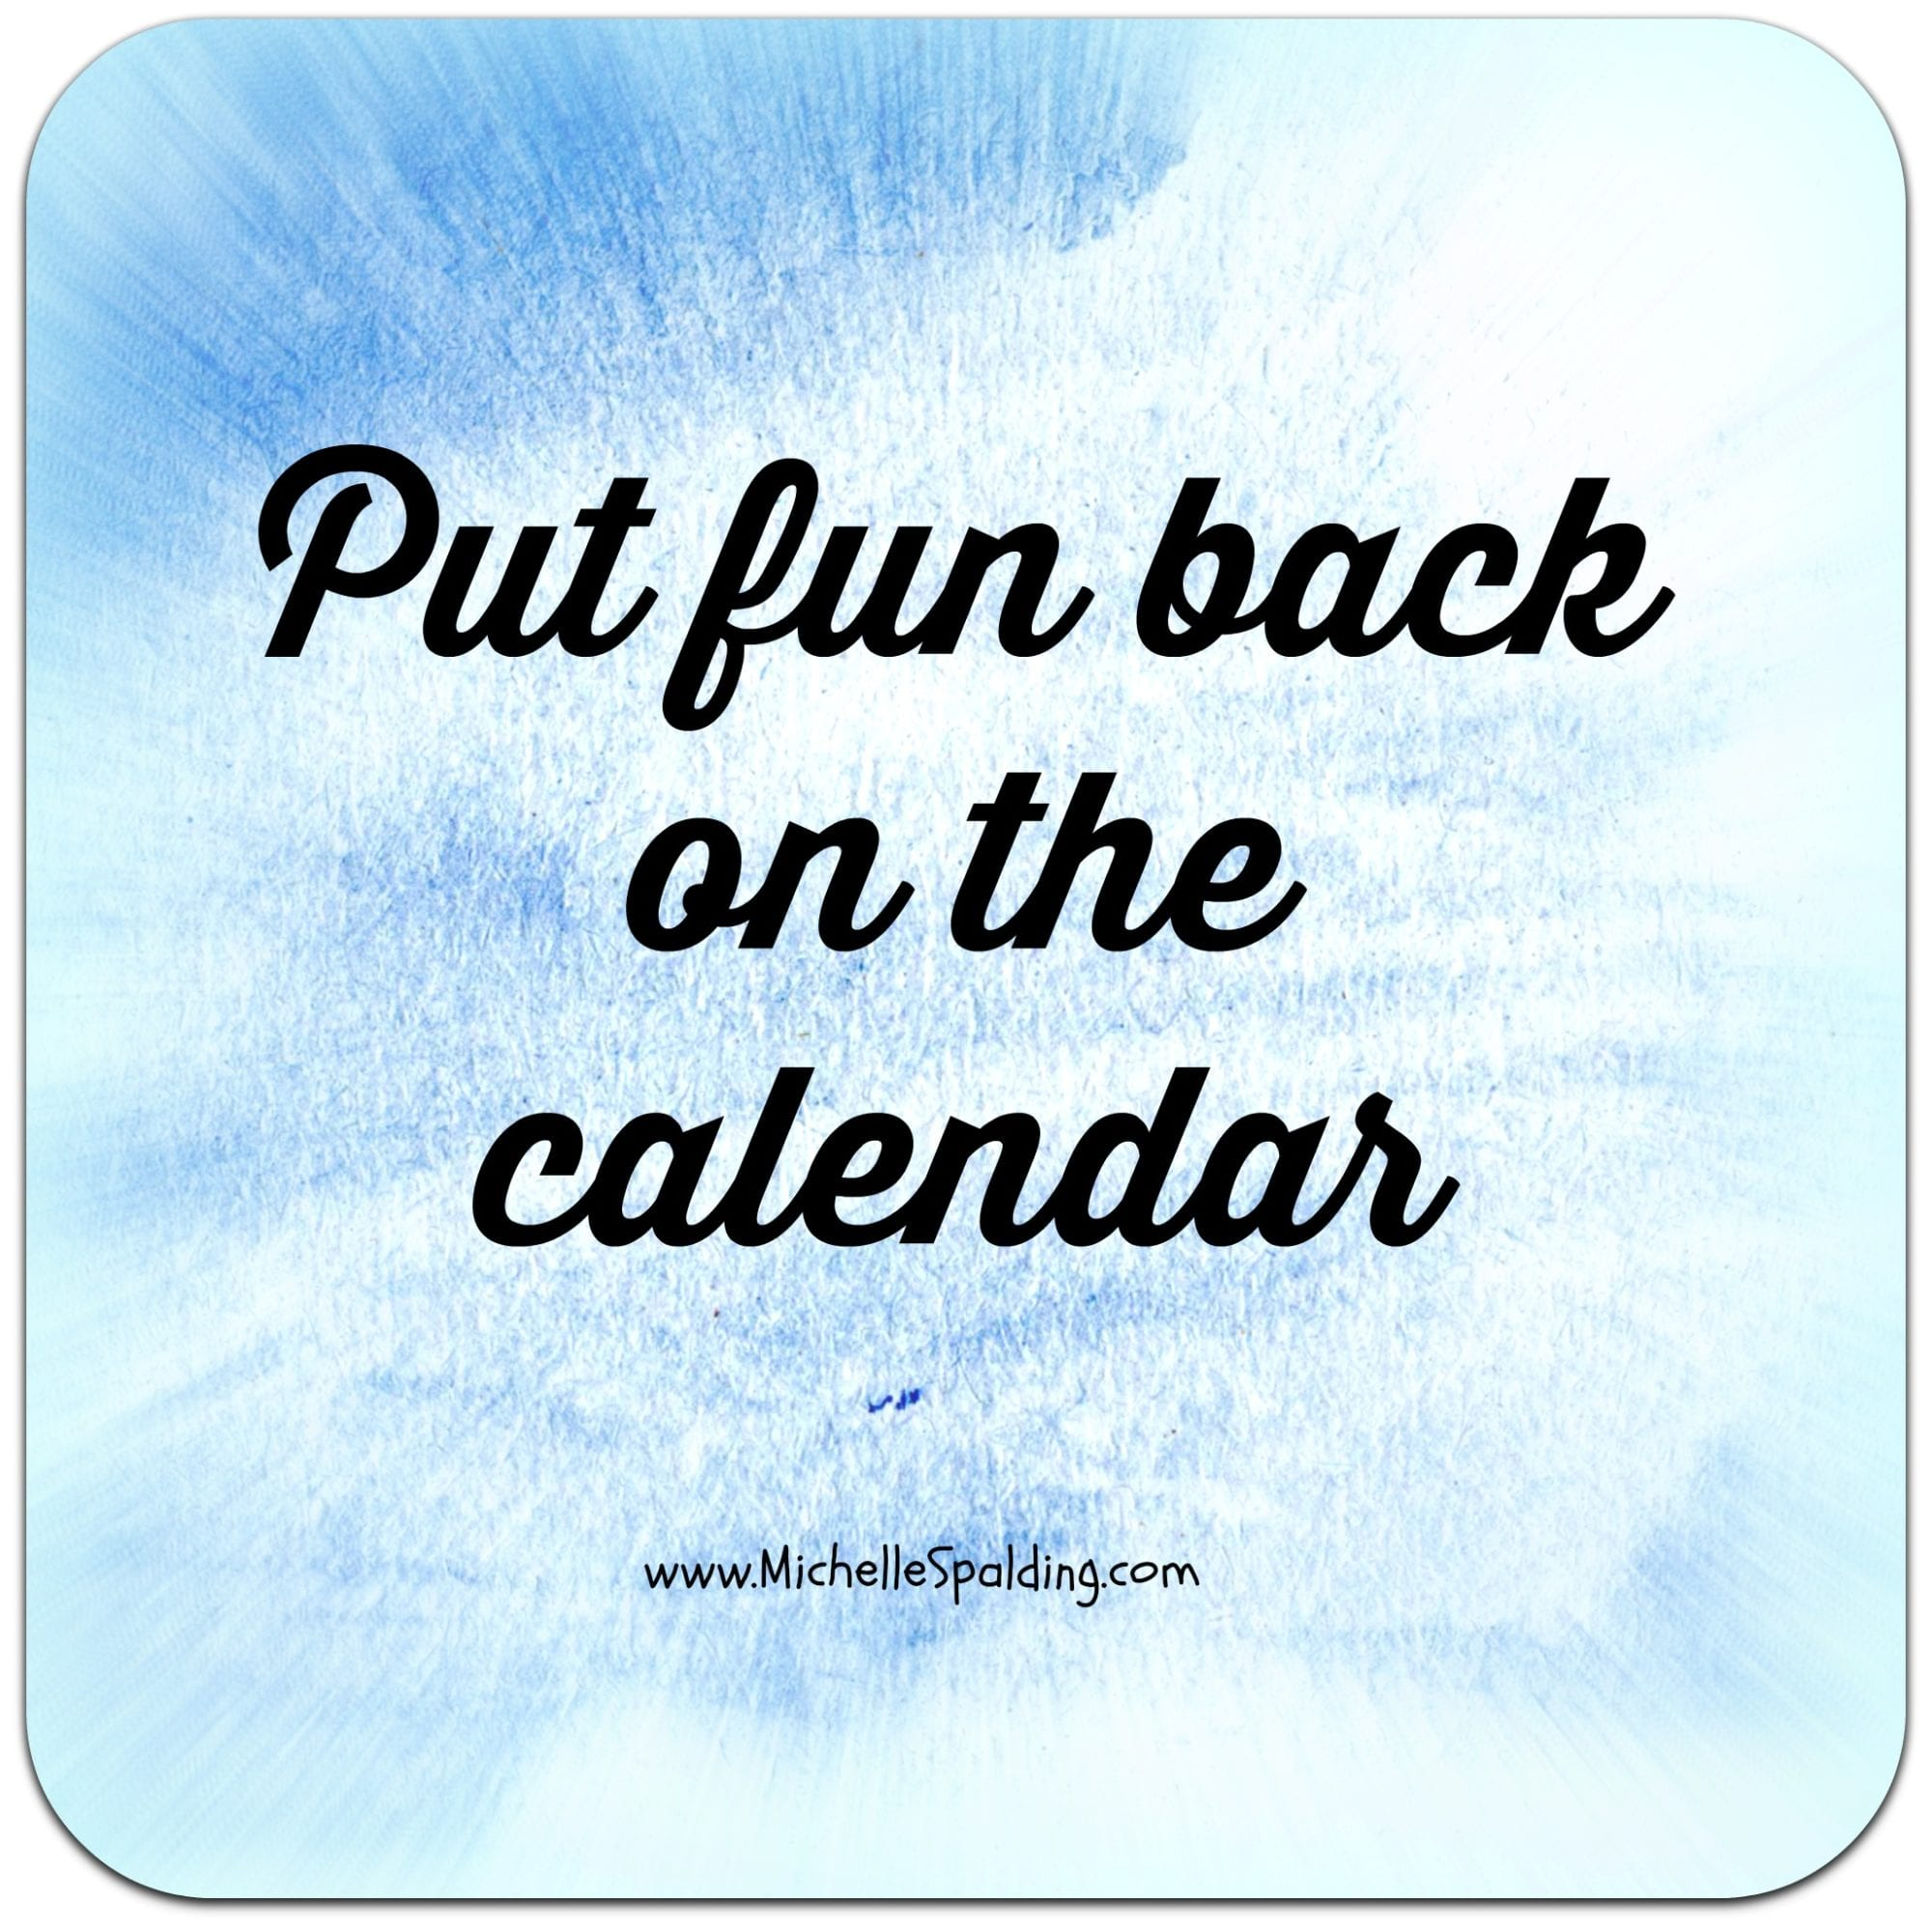 Put fun back on the calendar